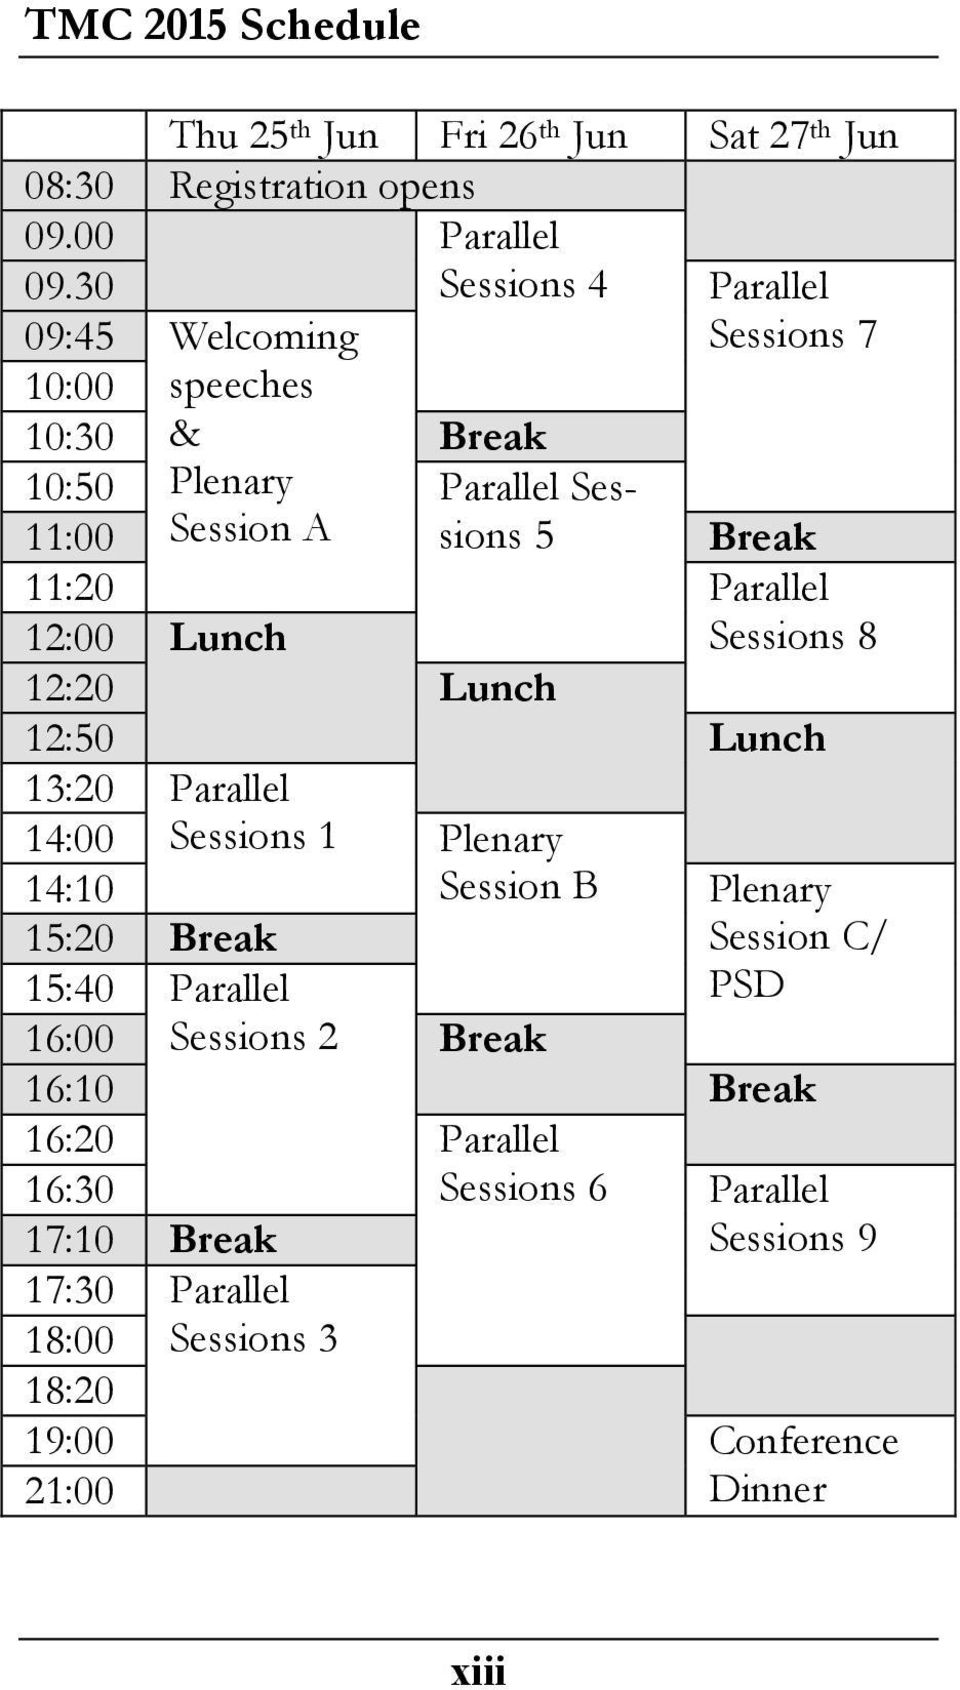 Parallel 12:00 Lunch Sessions 8 12:20 Lunch 12:50 Lunch 13:20 Parallel 14:00 Sessions 1 Plenary 14:10 Session B Plenary 15:20 Break Session C/